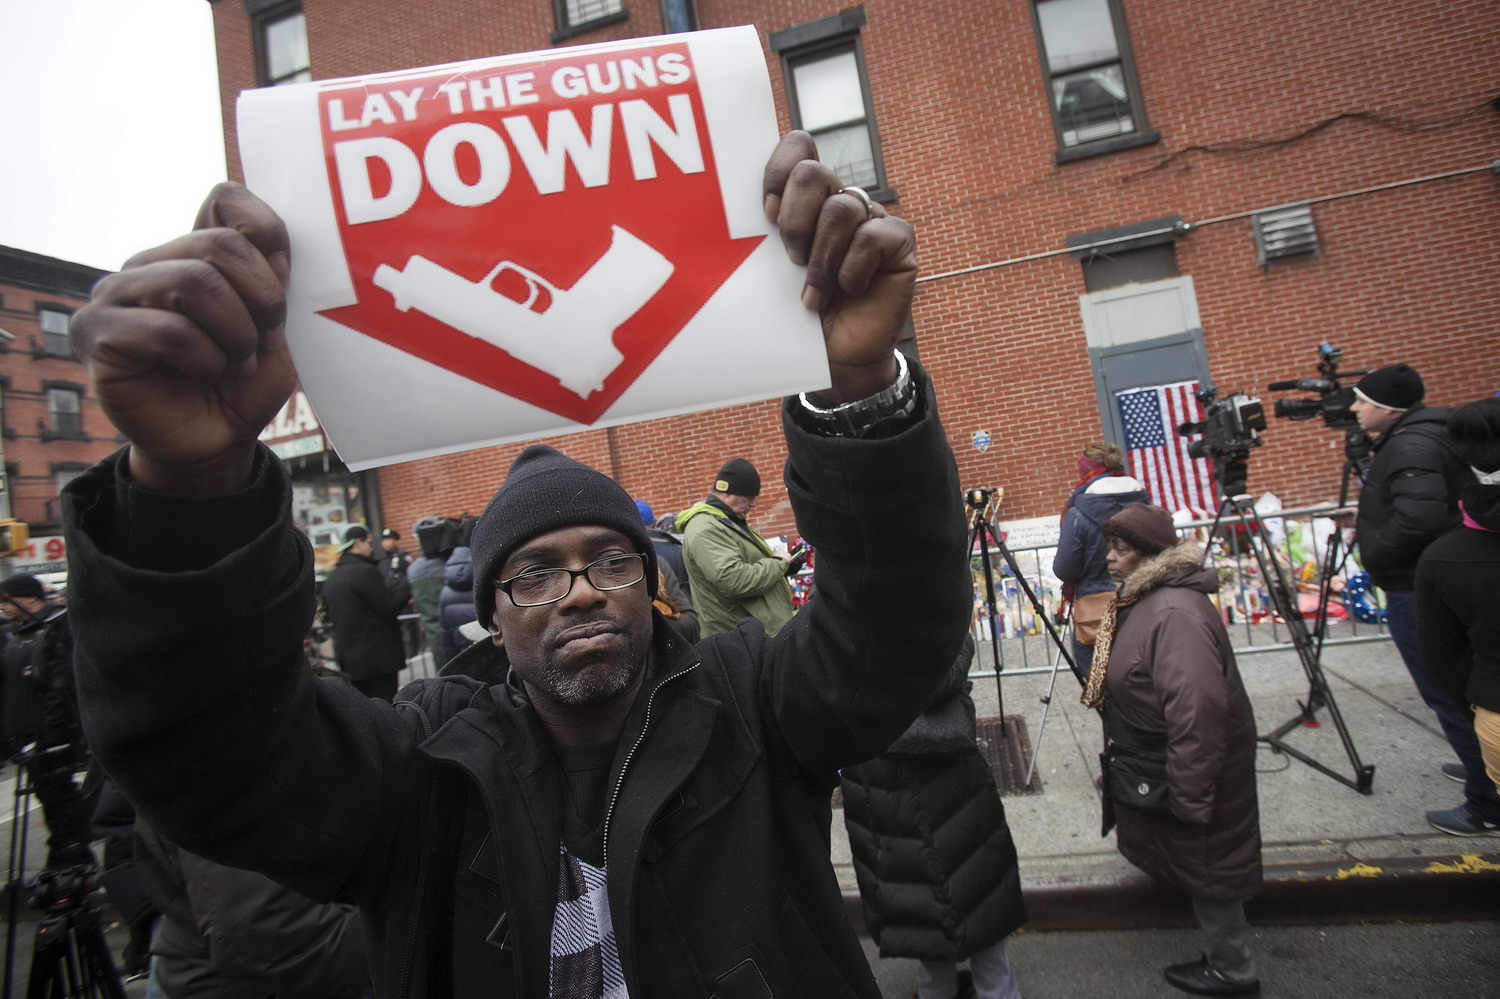 New York mayor calls for pause in protests after police killings